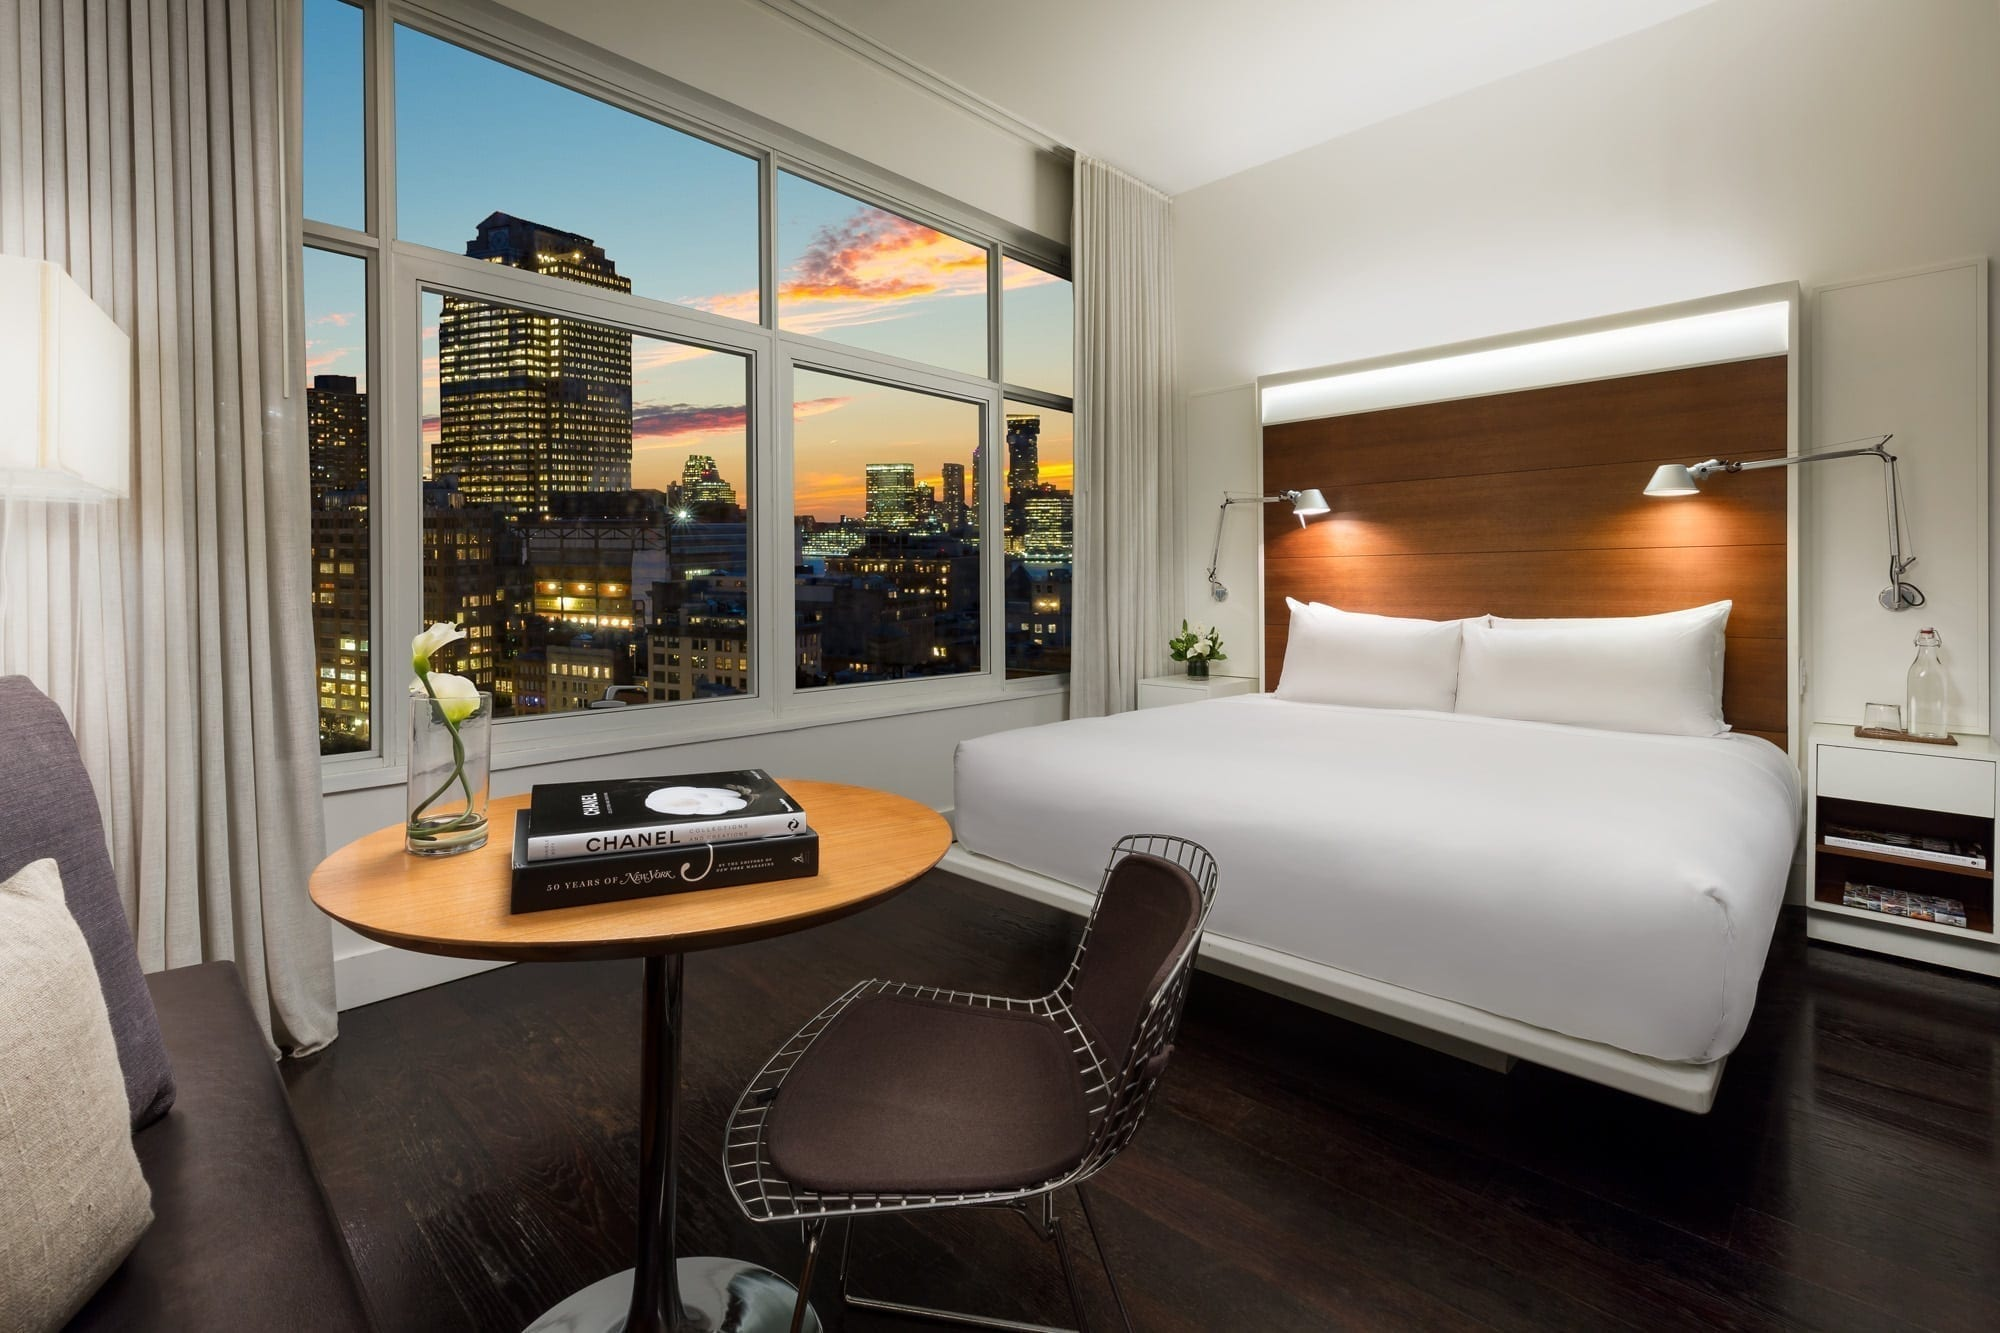 Alternate view inside a guestroom of The James Hotel SoHo. A pair of lamps lights up each side of the King sized bed. The wide window offers a generous view of the New York City skyline.